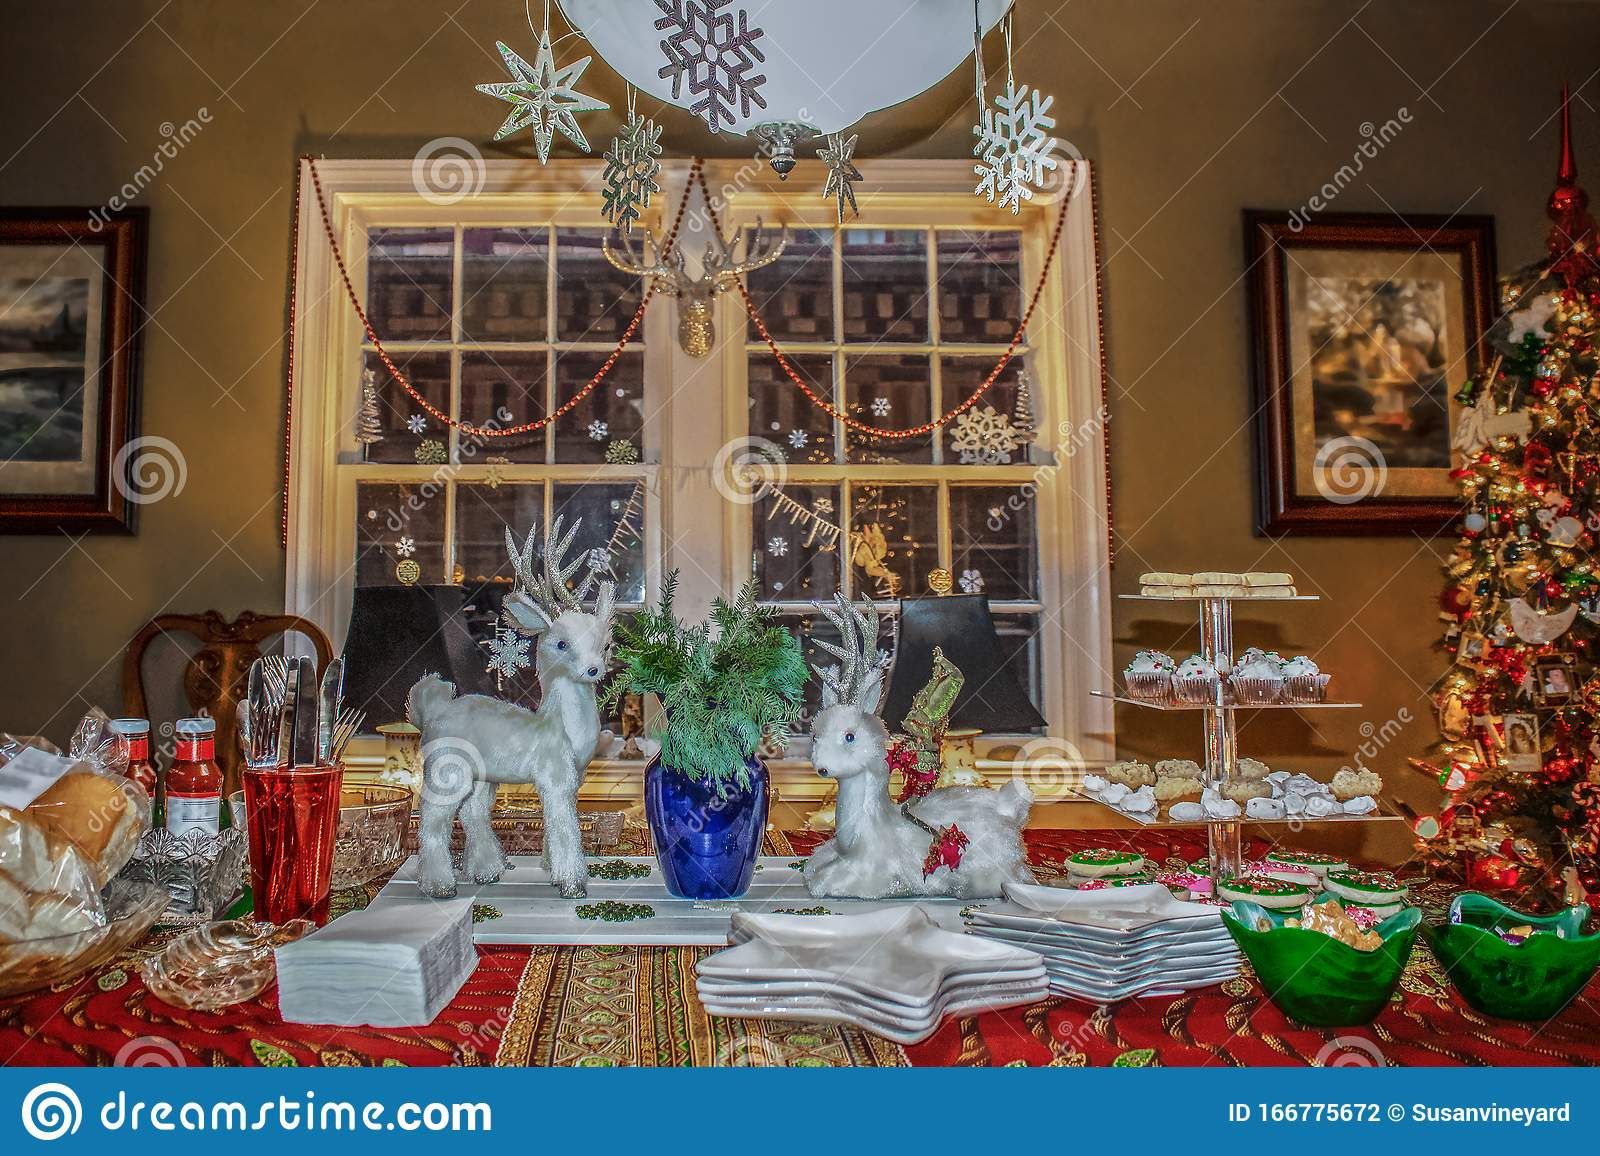 Family Dining Room With Decorations And Christmas Tree Ready For Christmas Eve Buffet Stock Photo Image Of Celebration Living 166775672